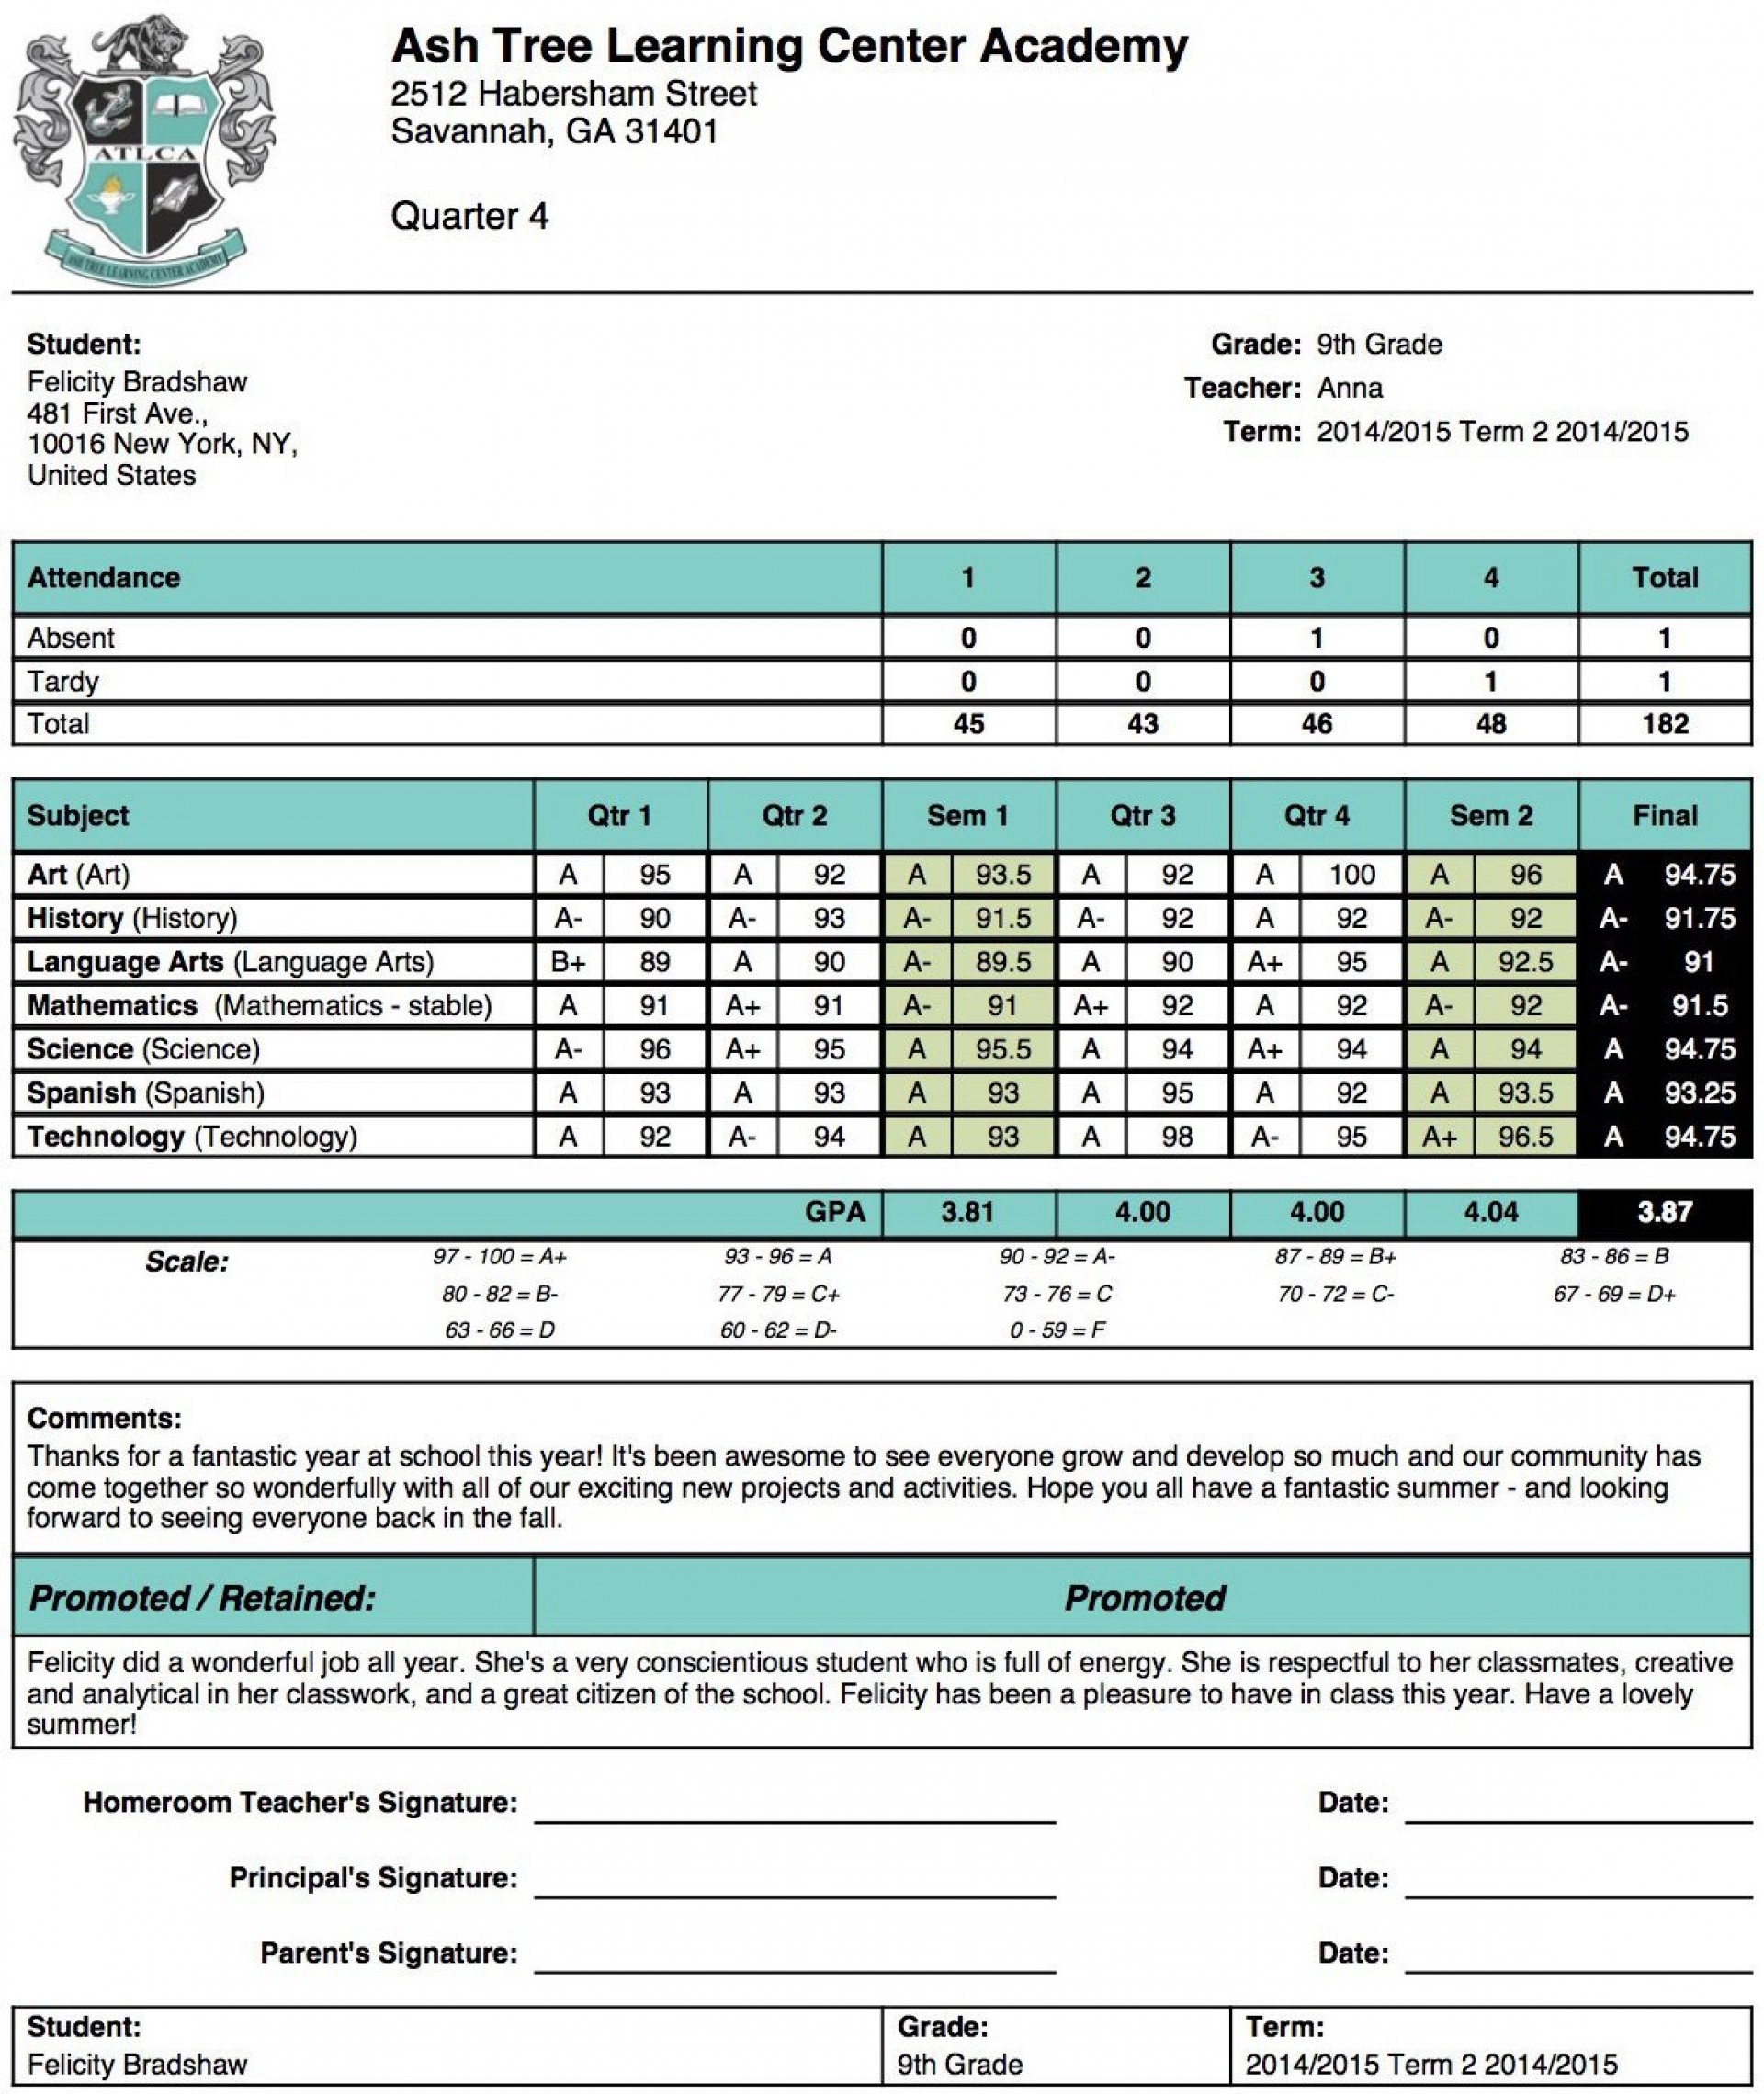 004 Astounding Middle School Report Card Template High Definition  Pdf Homeschool Free Standard Based Sample1920